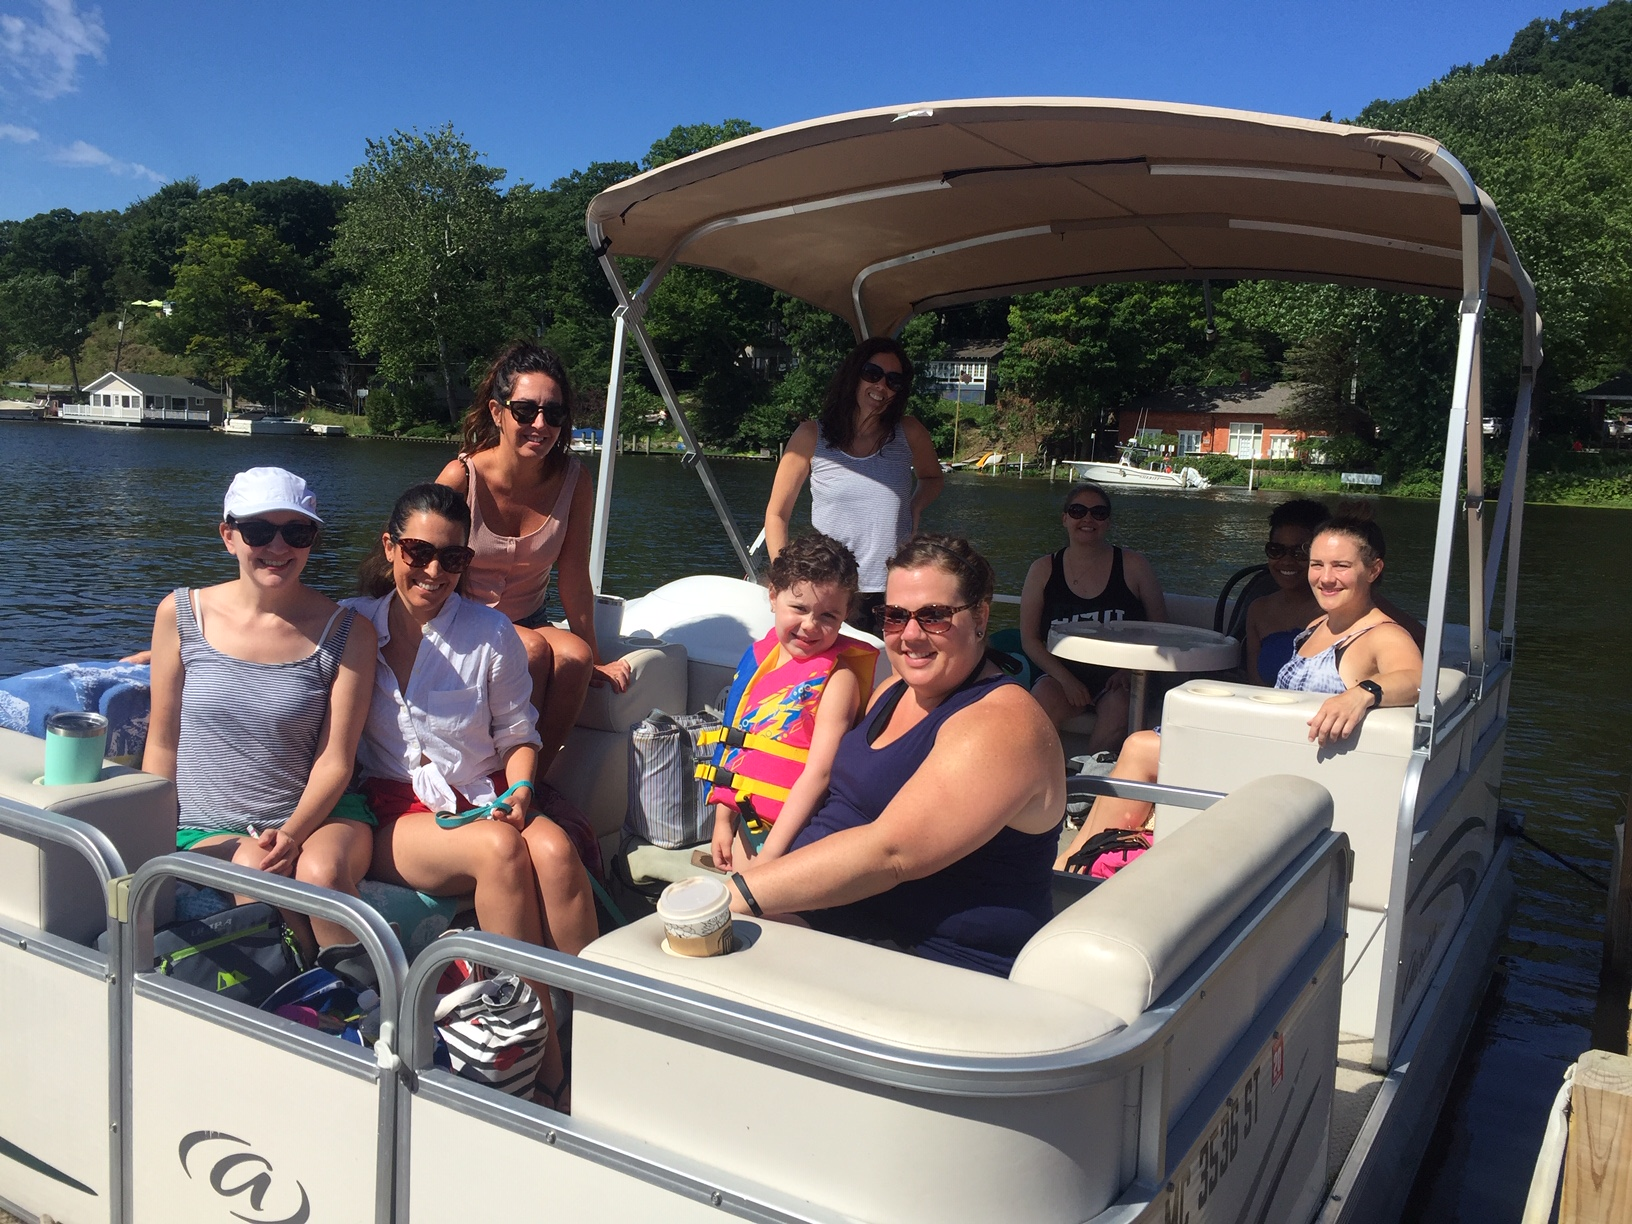 A group enjoying a Pontoon Boat ride on a sunny day in Saugatuck Michigan